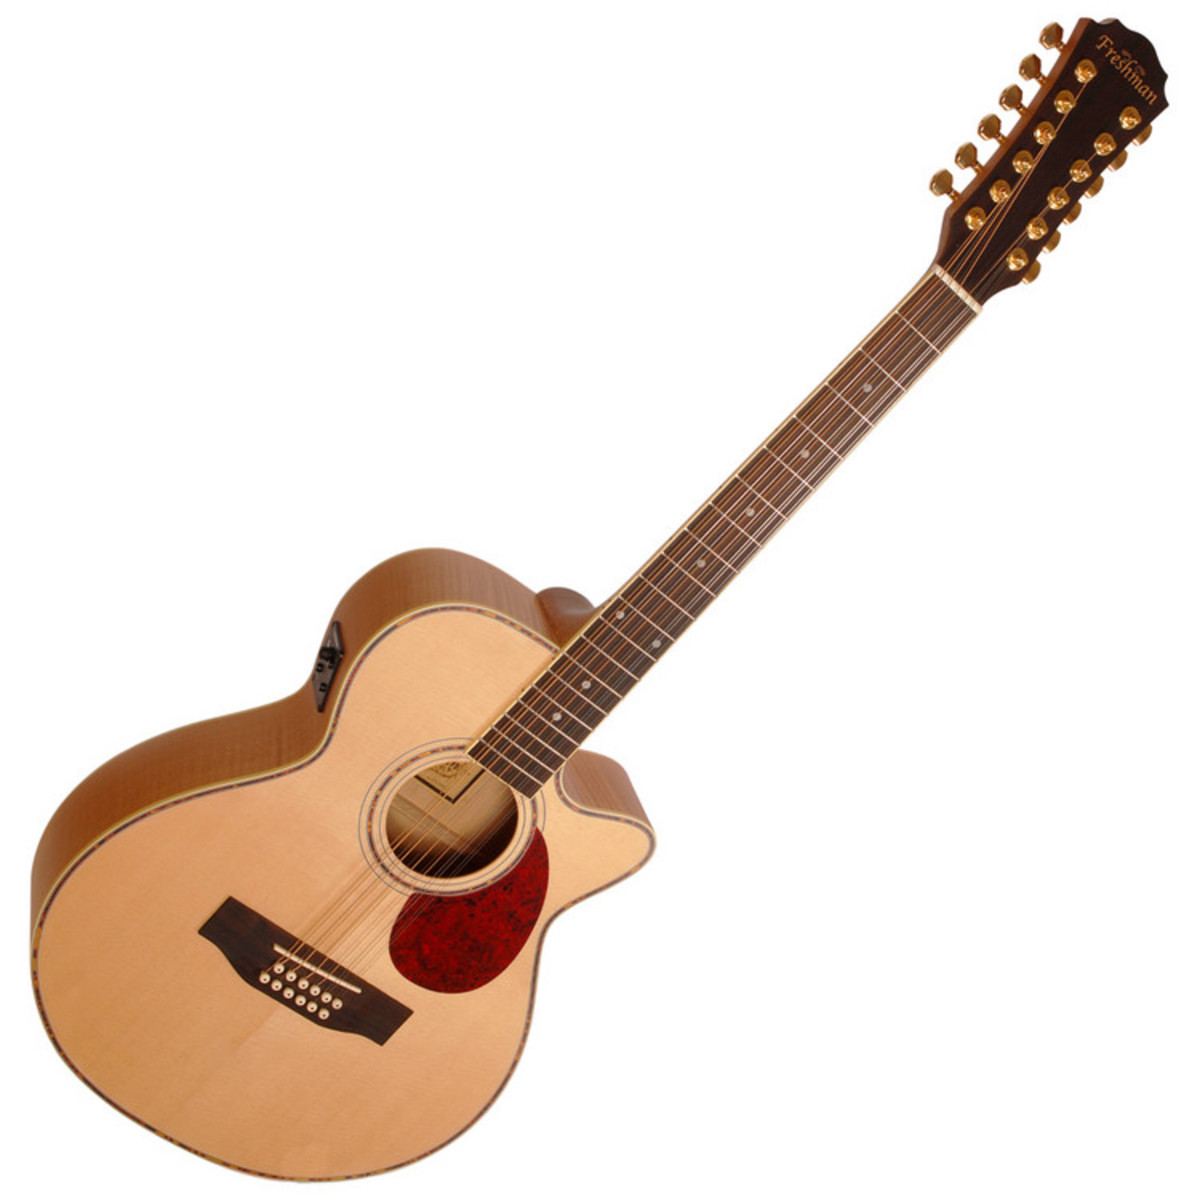 freshman fa1am12 12 string electro acoustic guitar natural at gear4music. Black Bedroom Furniture Sets. Home Design Ideas